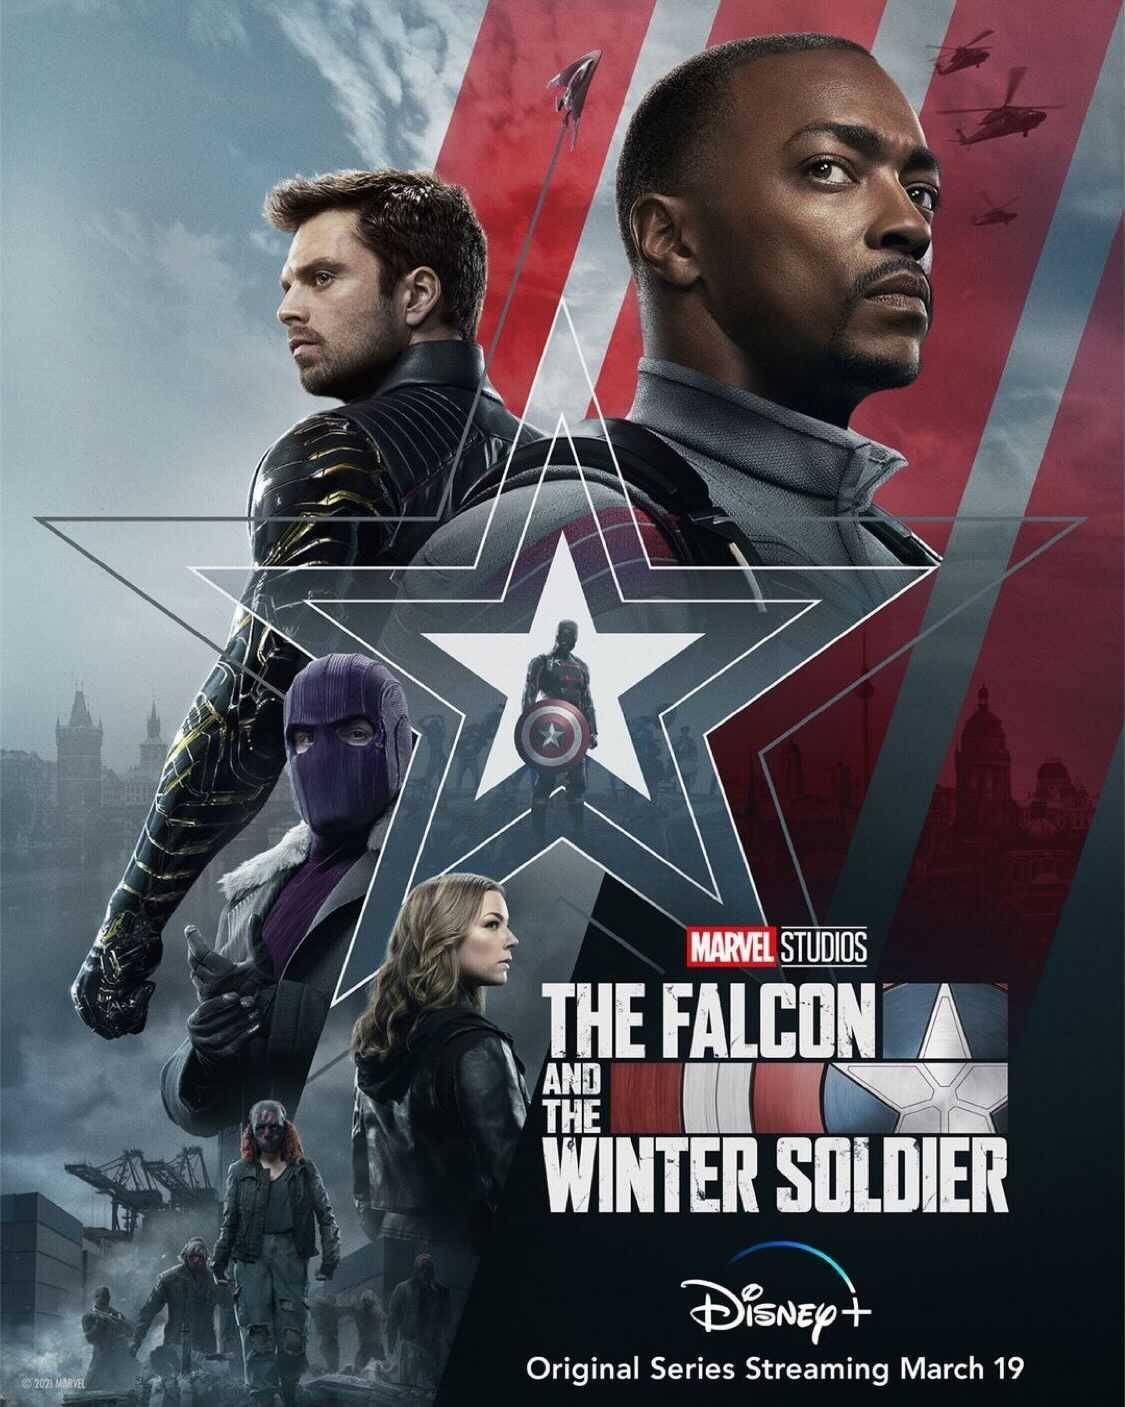 Marvel announces release date of The Falcon and the Winter Soldier, Starring Anthony Mackie and Sebastian Stan